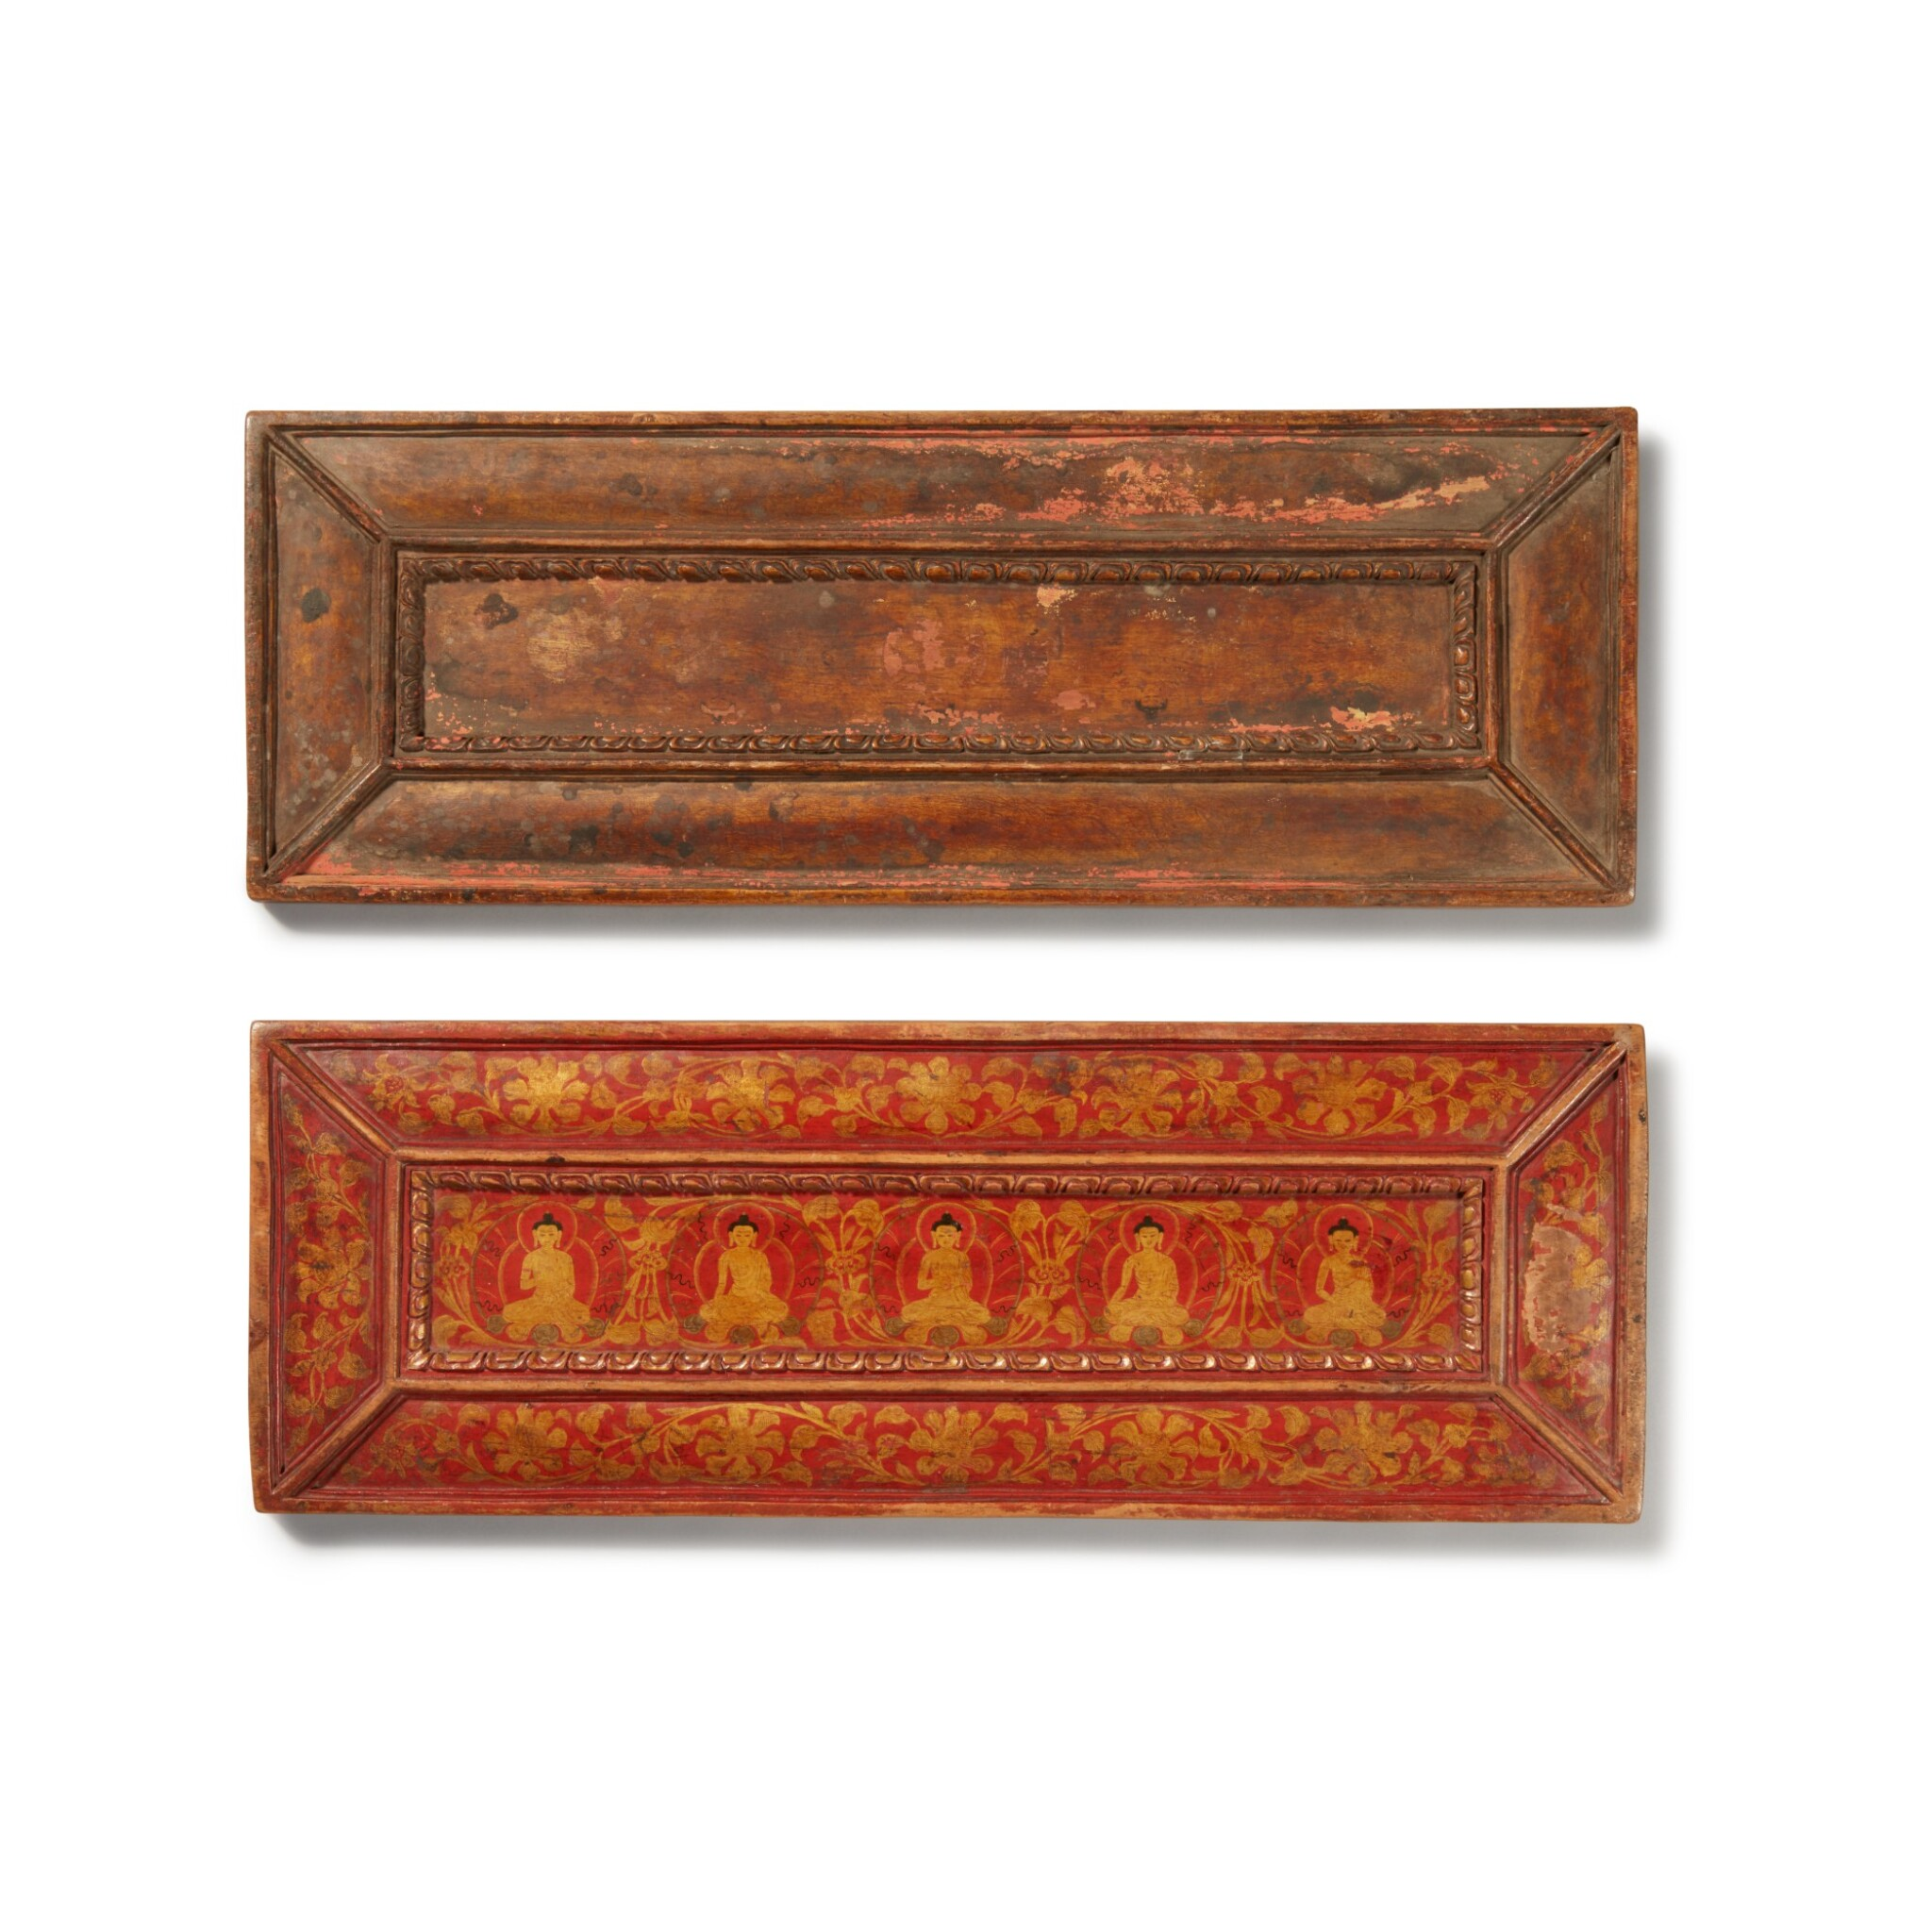 View full screen - View 1 of Lot 325. A Pair of Polychrome Wood Manuscript Covers, Tibet, circa 15th Century.